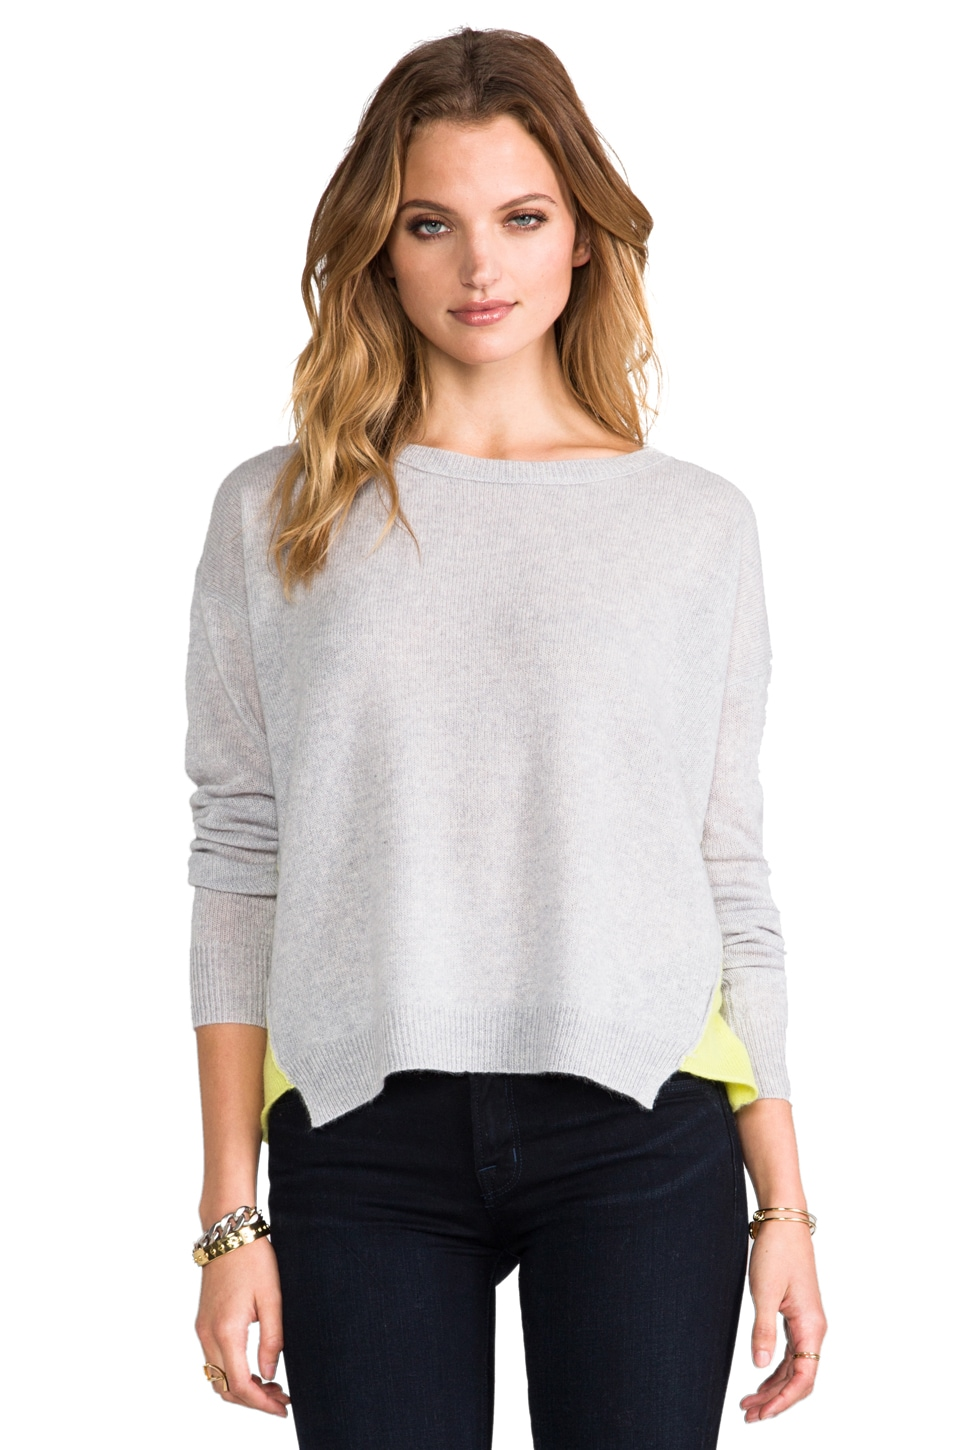 360 Sweater Devon Cashmere Sweater in Powder Grey/Citron